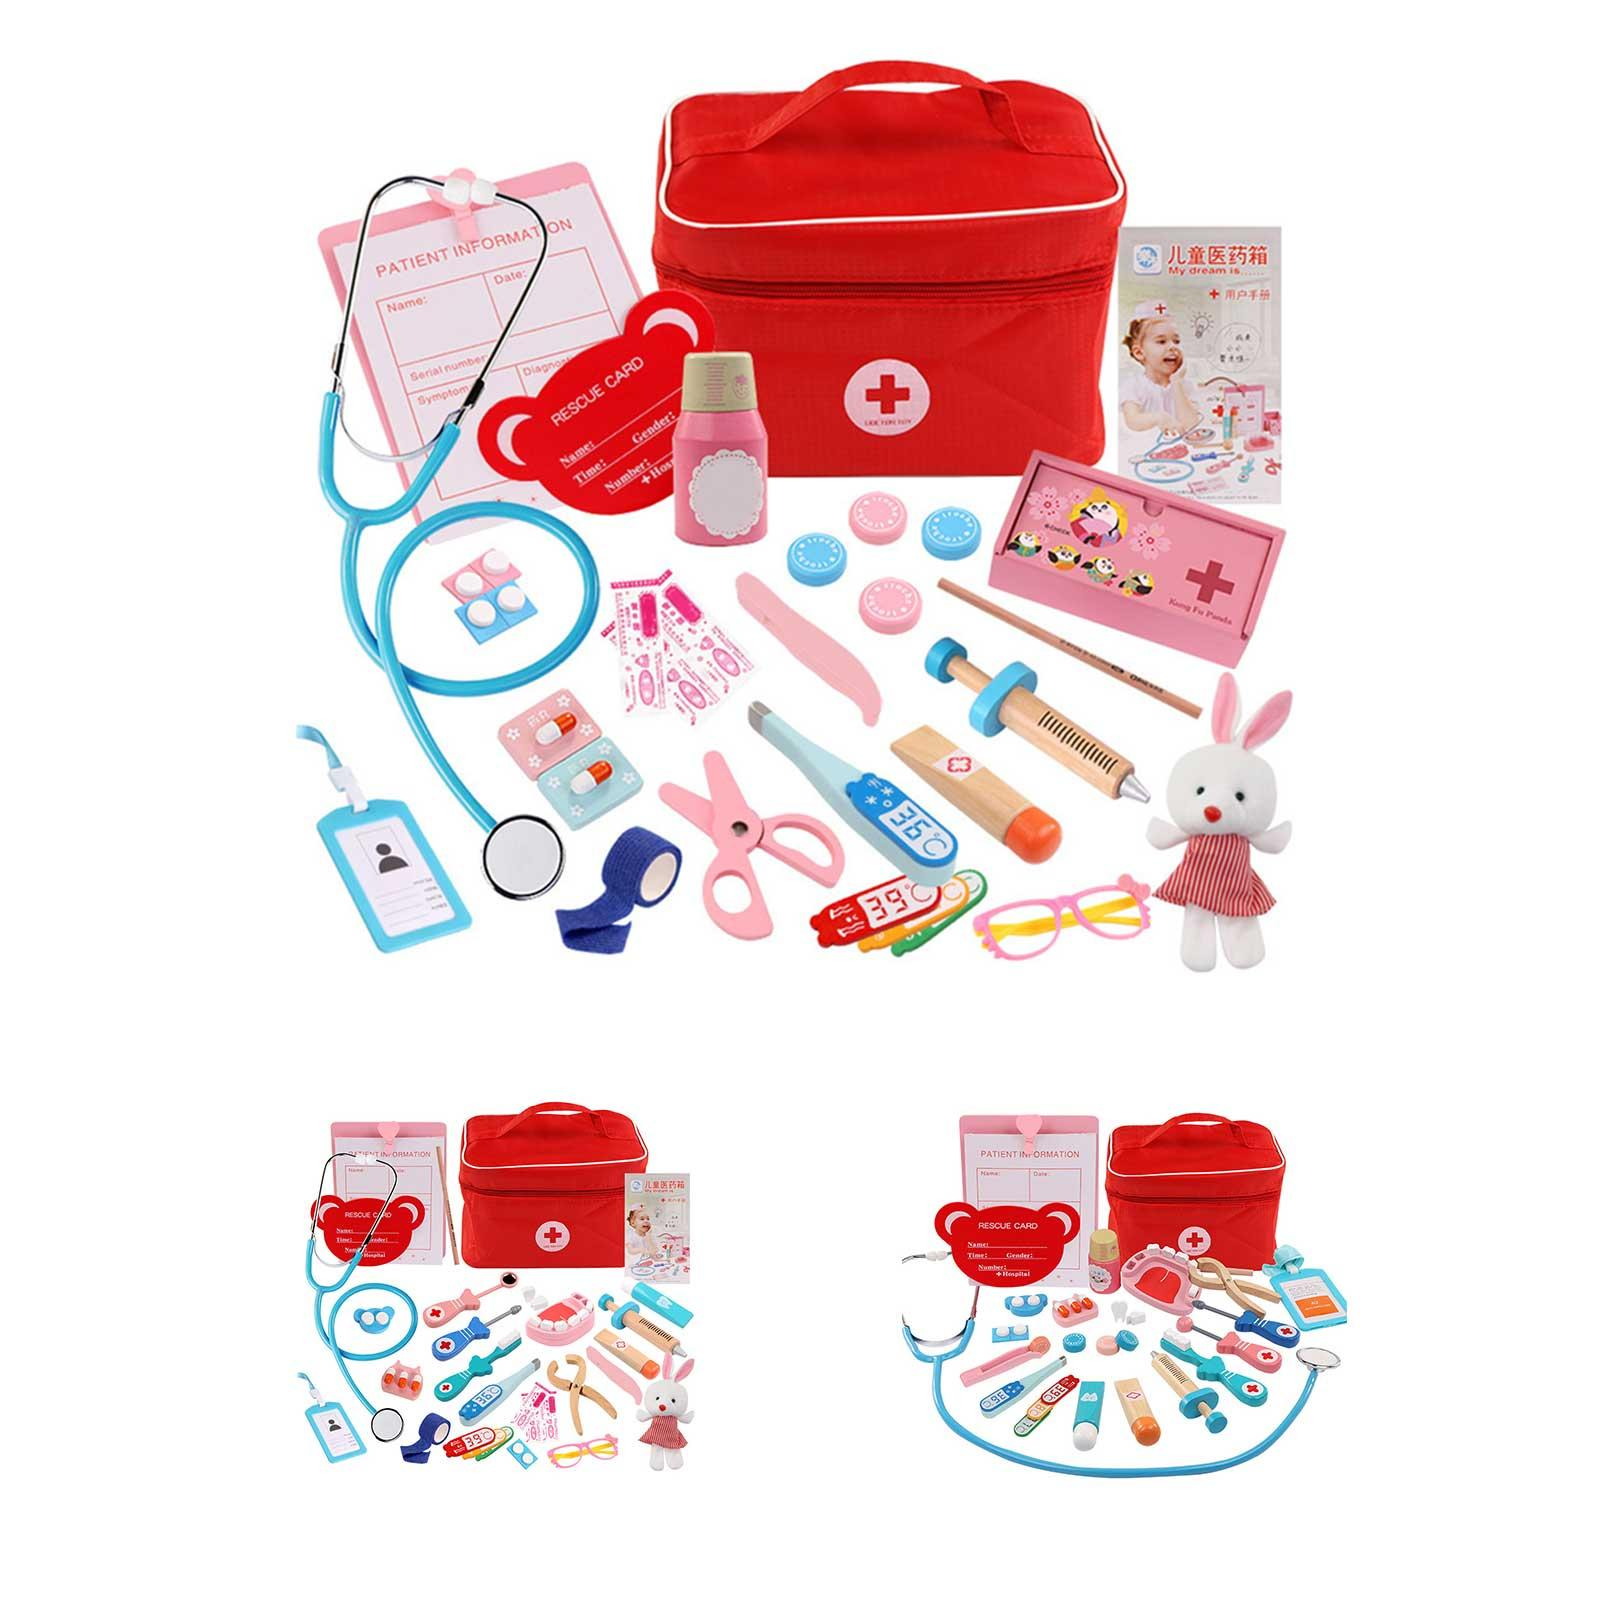 Kids Wooden Simulation Girl Doctor Nurse Stethoscope Medical Kit Play House Toy